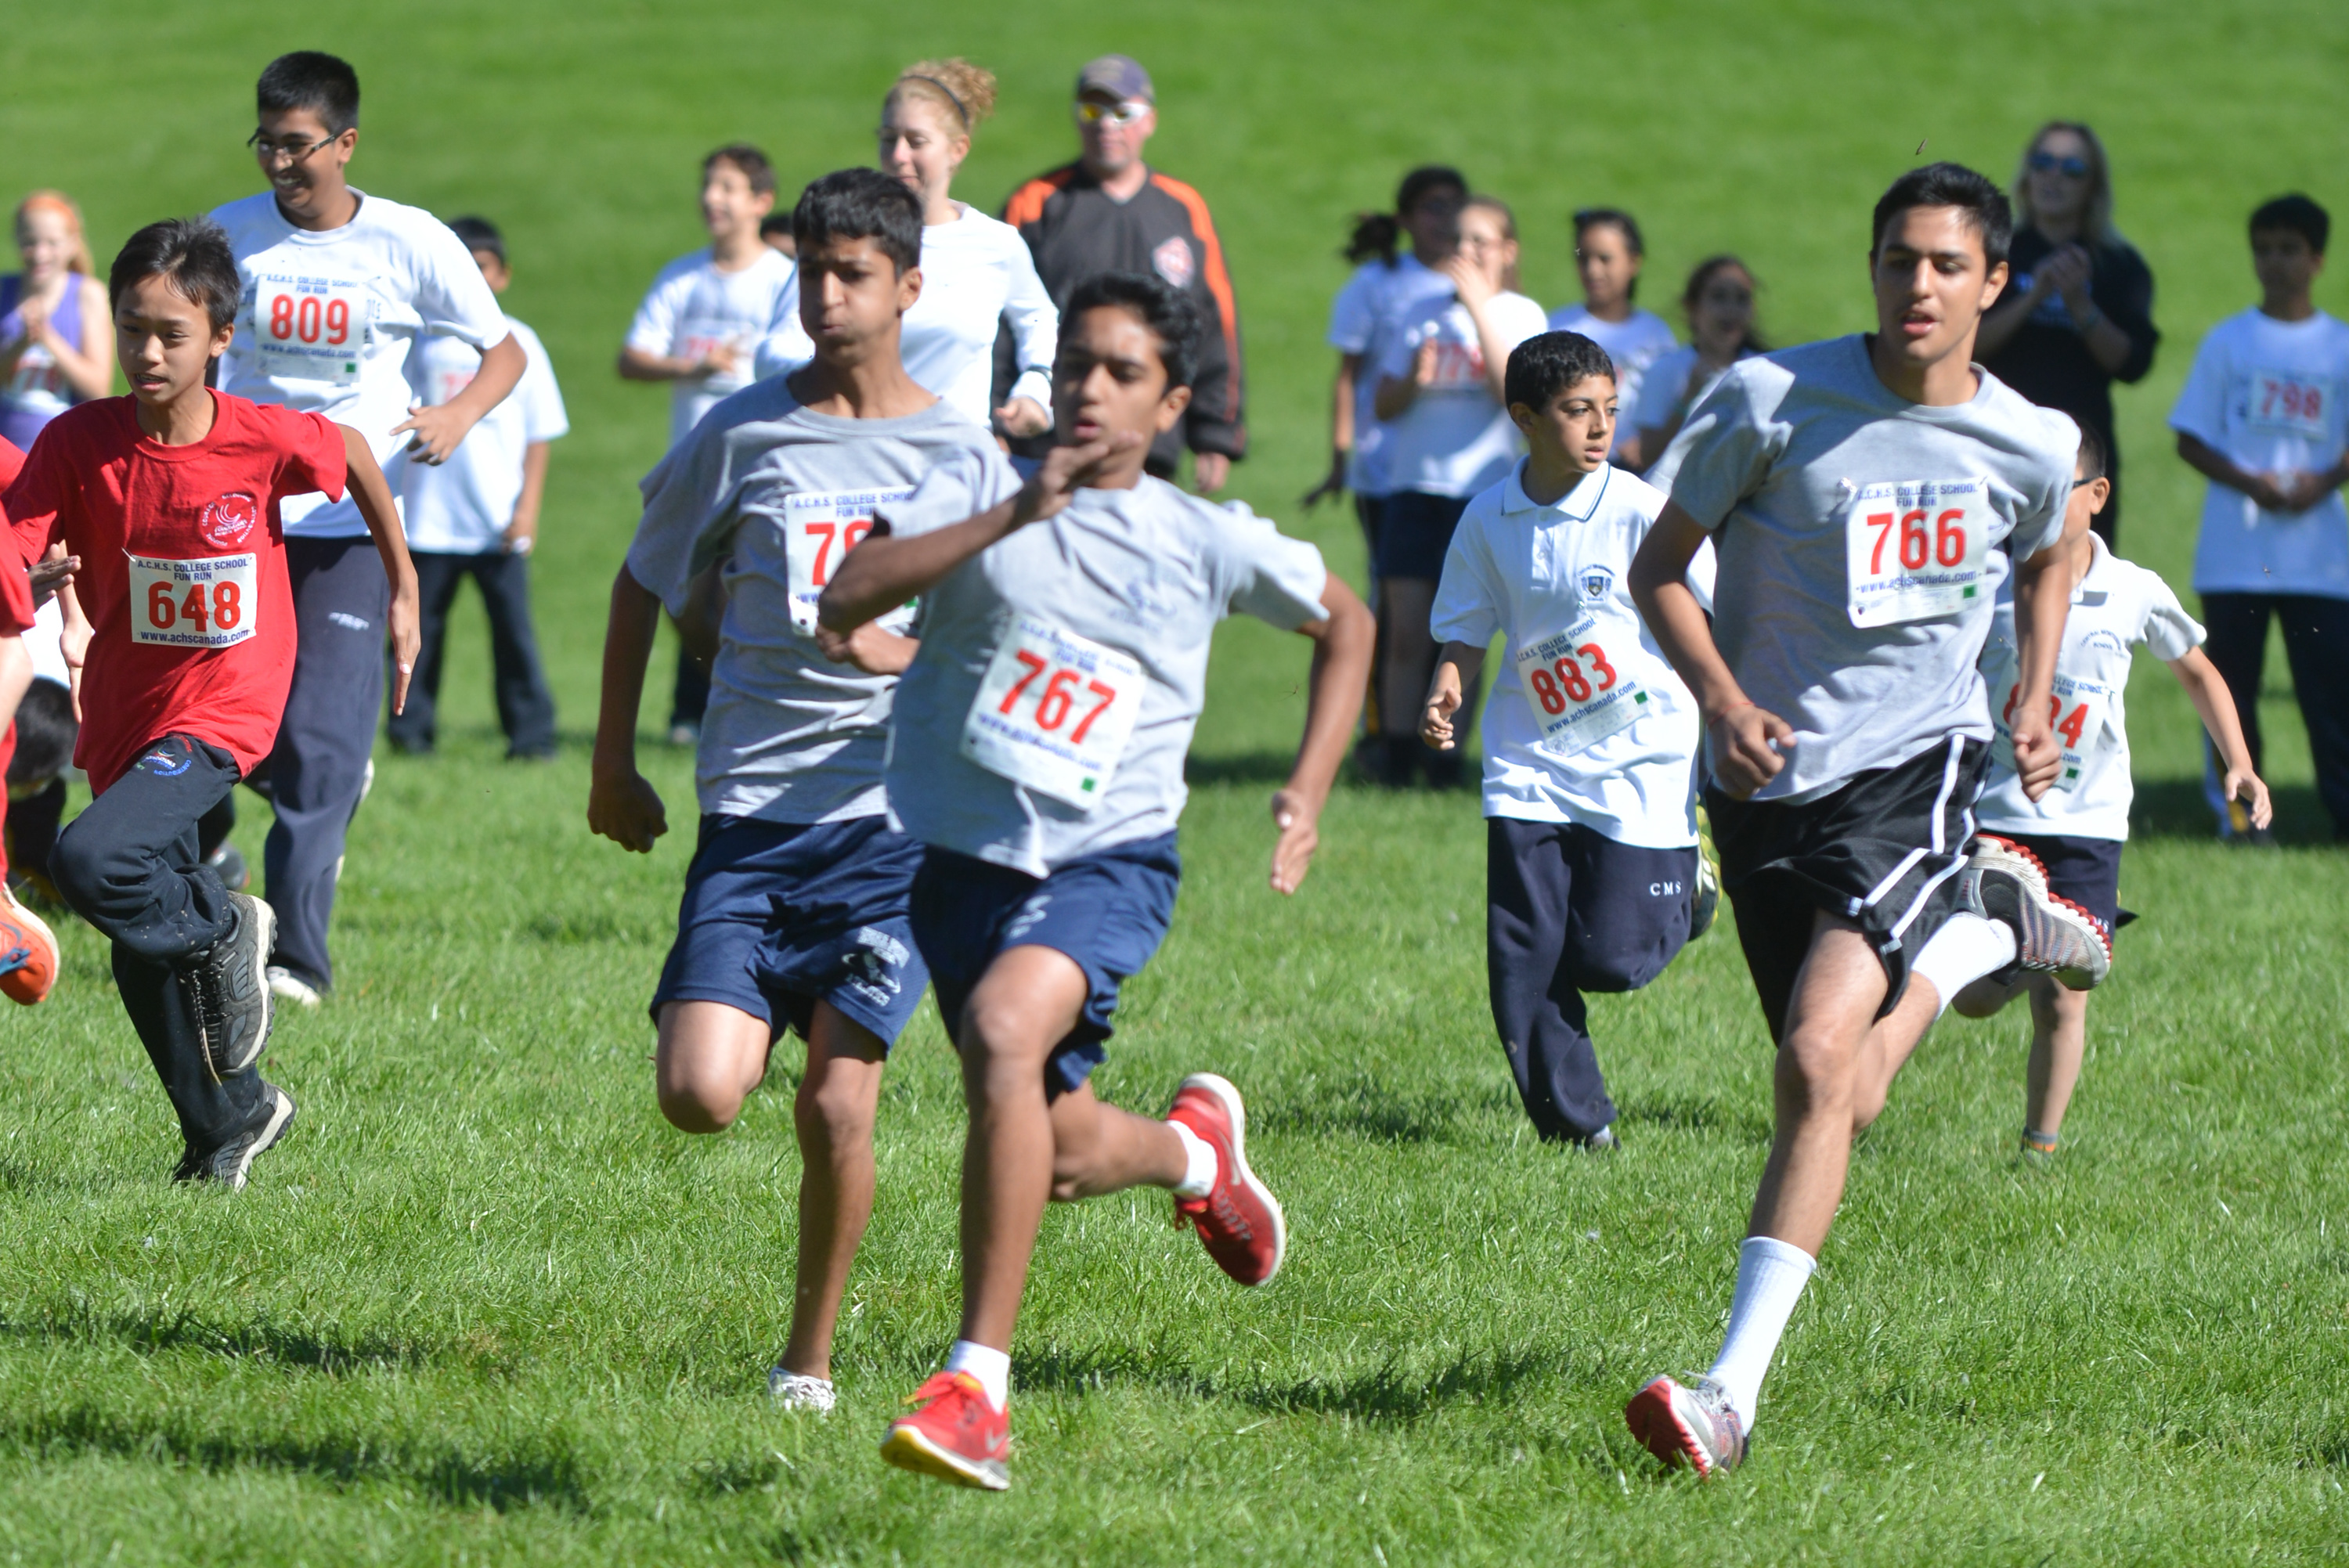 cross country running essay A group of high school boys in running shoes and gray sweatshirts crowd  cross-country provided a ticket out of poverty to runners with talent and focus.